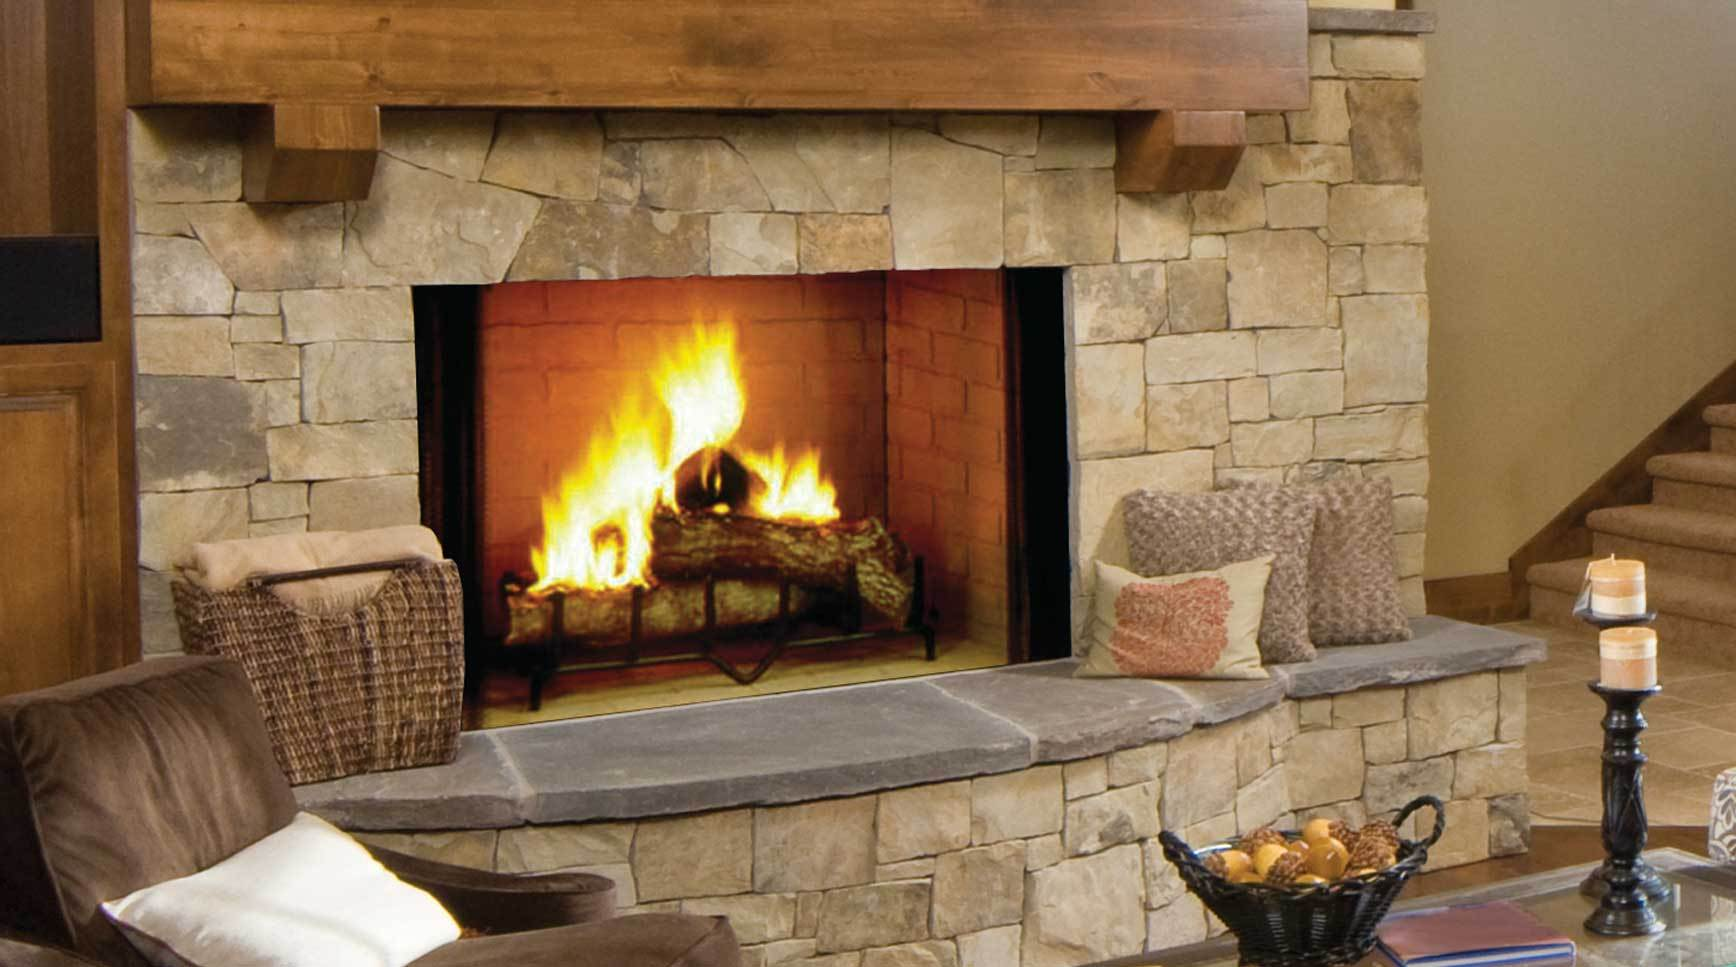 earthcore technology magnum modular wood in hearth burning isokern the indoor web original fireplace redhb